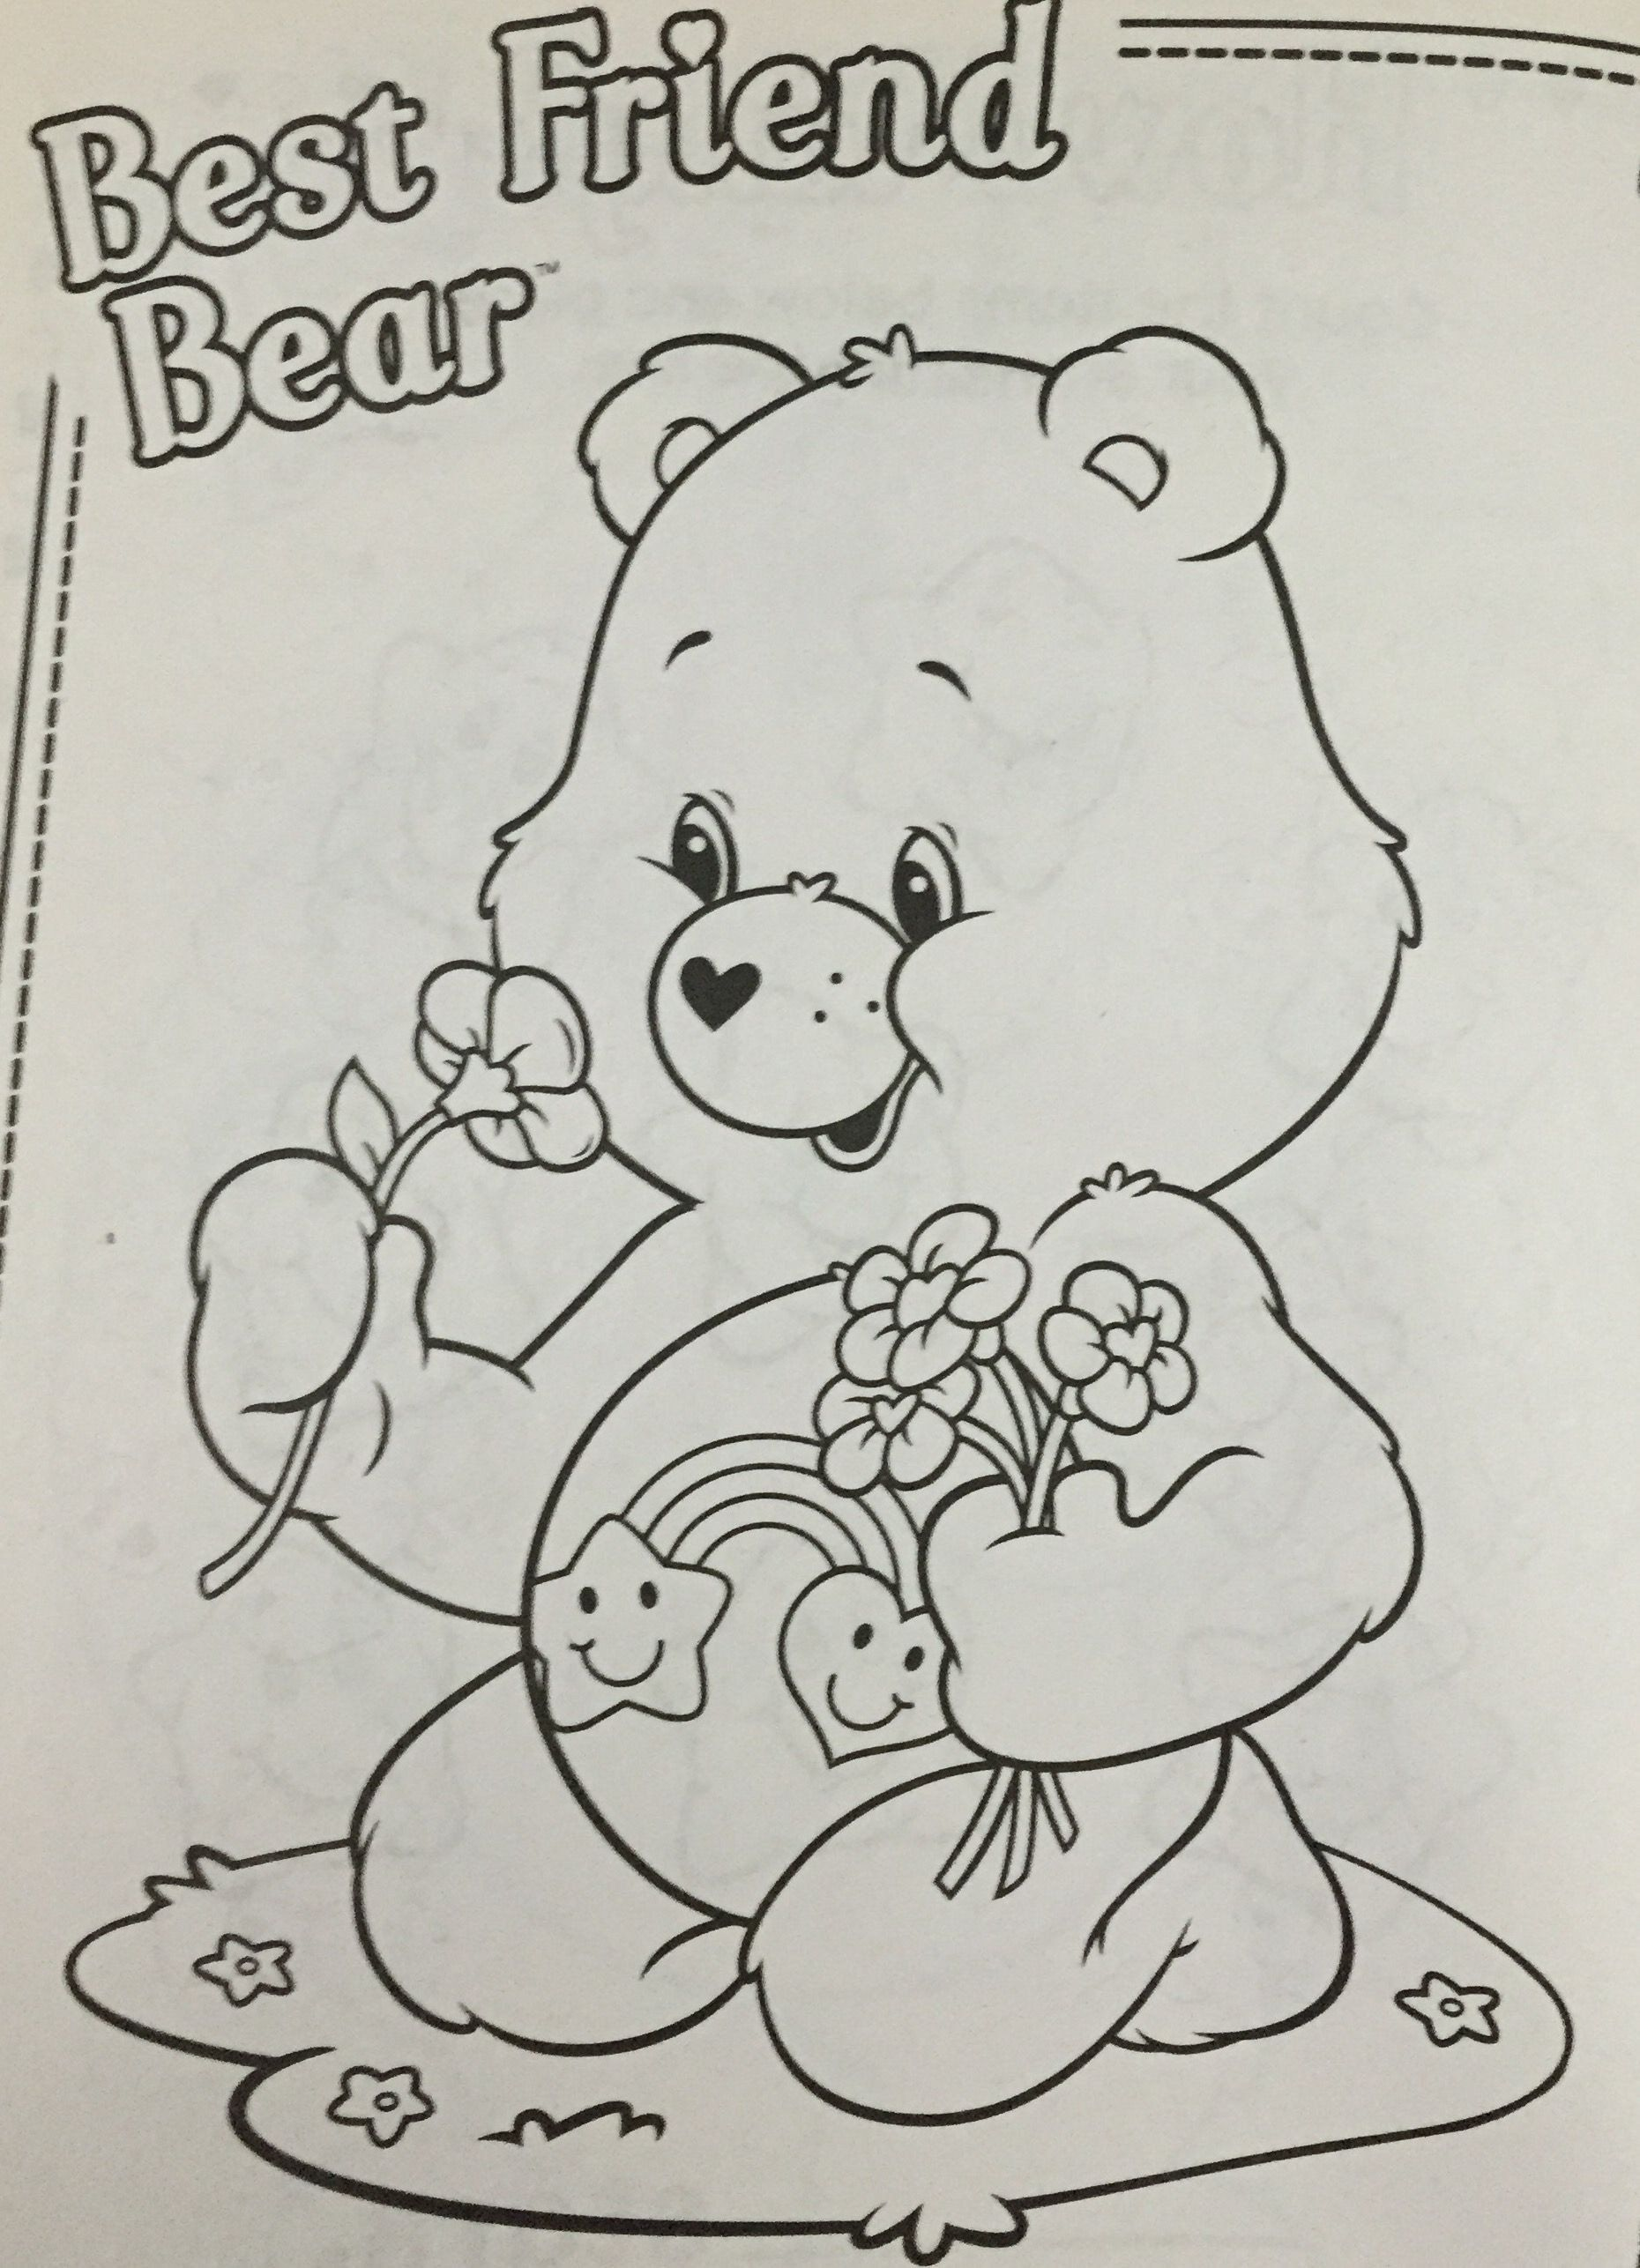 28 Beautiful Care Bears Coloring Pages In 2020 Bear Coloring Pages Cute Coloring Pages Coloring Pages